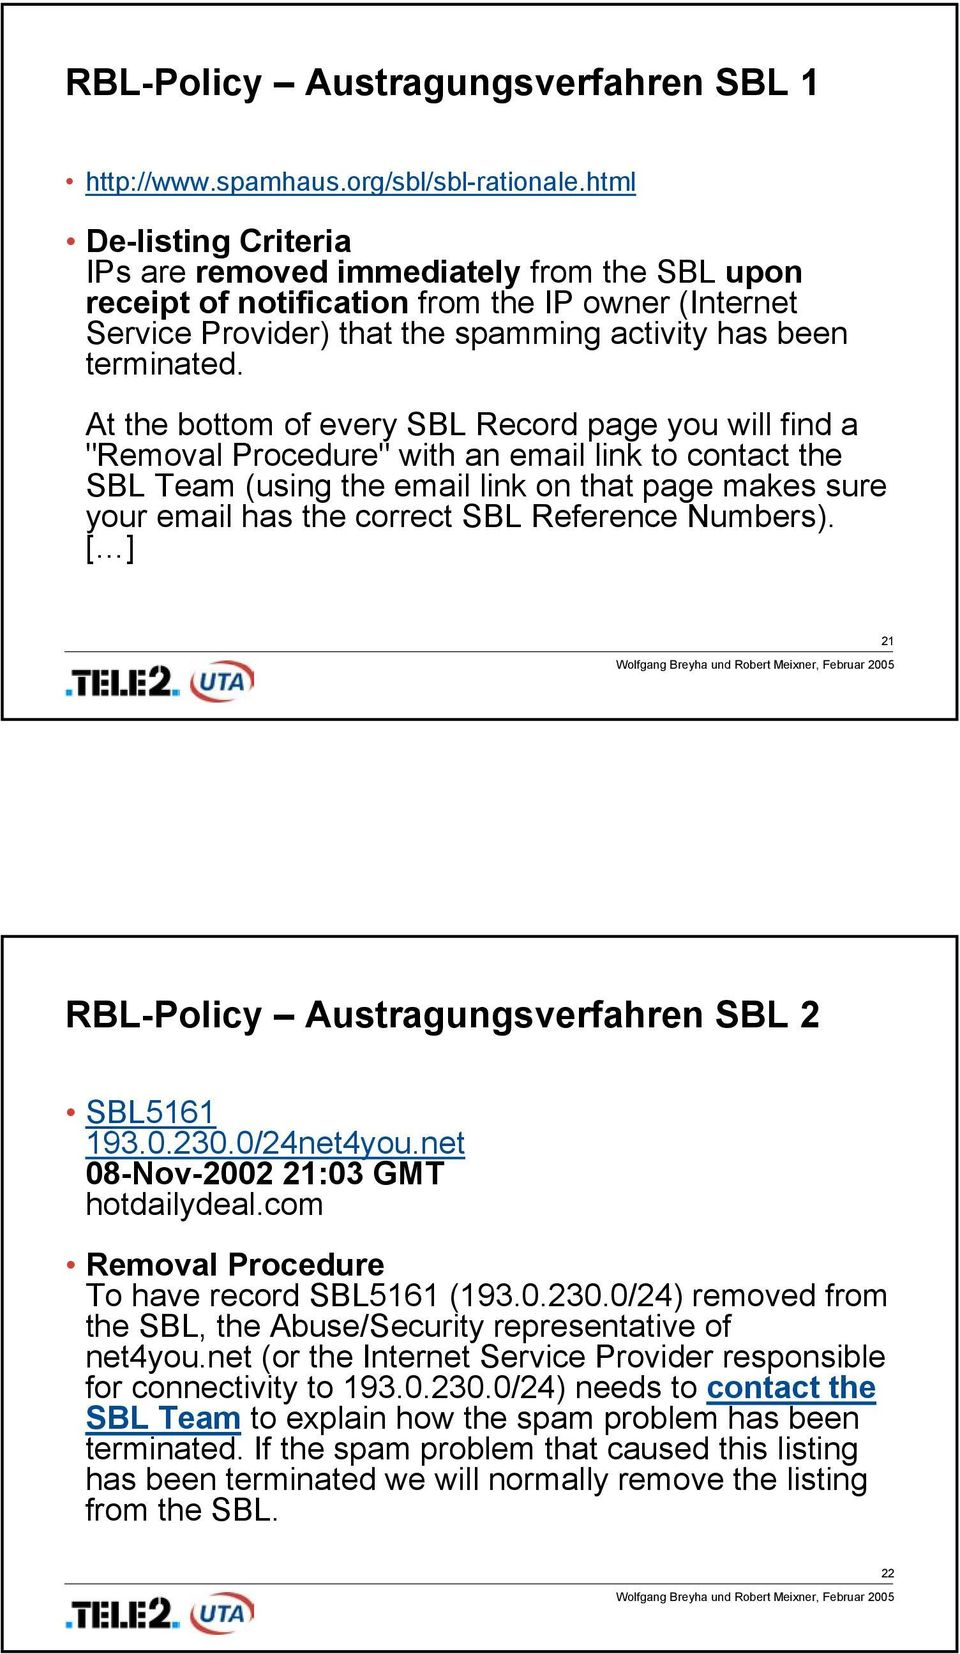 "At the bottom of every SBL Record page you will find a ""Removal Procedure"" with an email link to contact the SBL Team (using the email link on that page makes sure your email has the correct SBL"